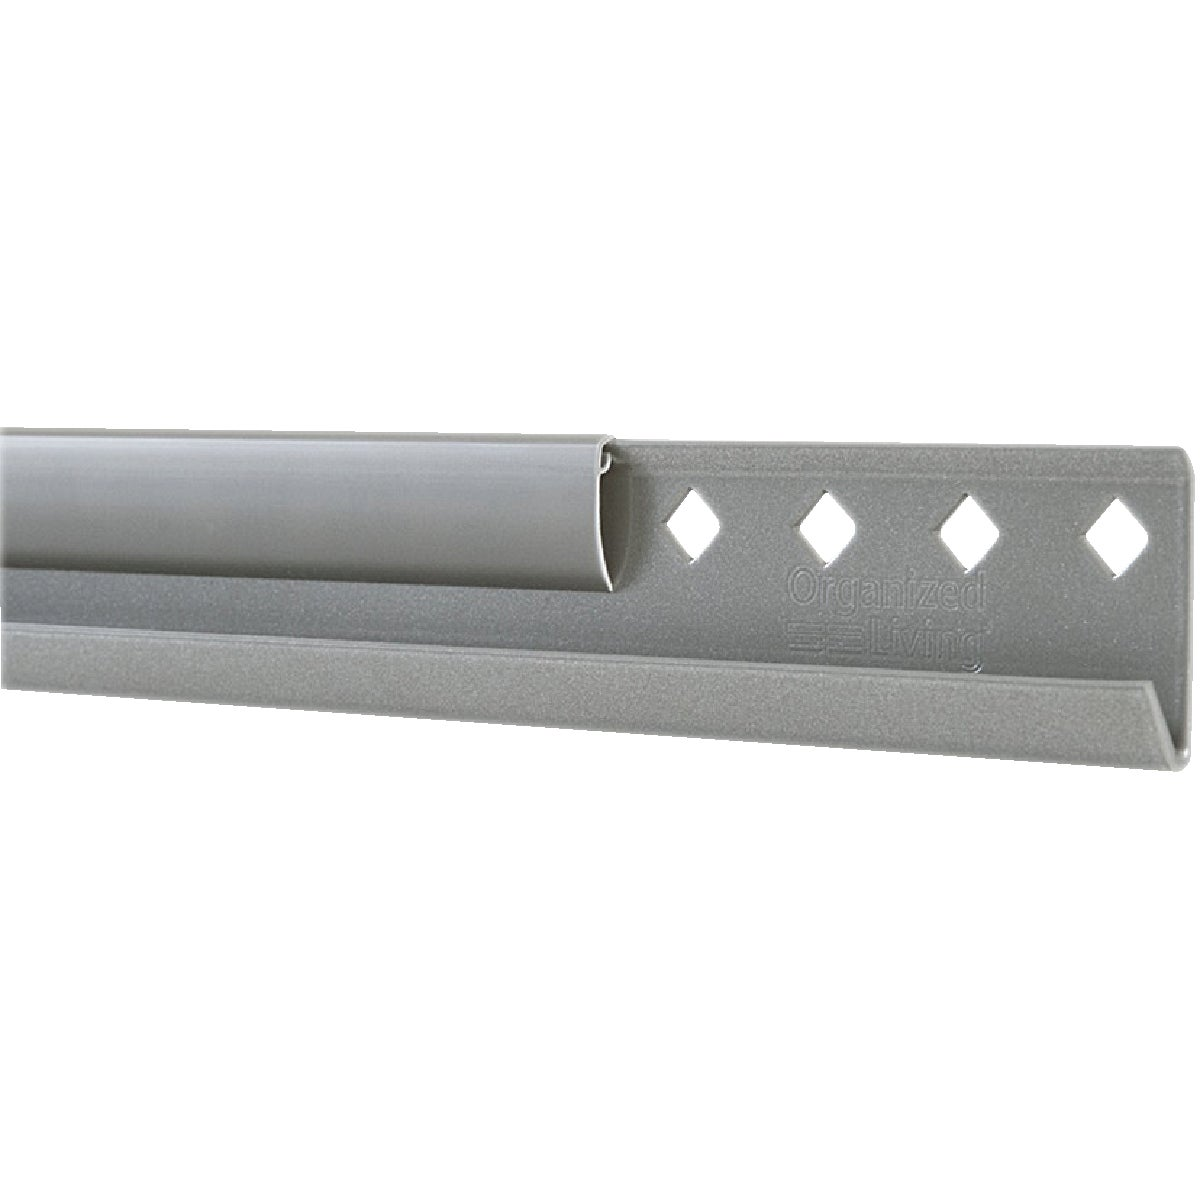 "NICKEL 24"" HANGING RAIL - 7913442445 by Schulte Corp"